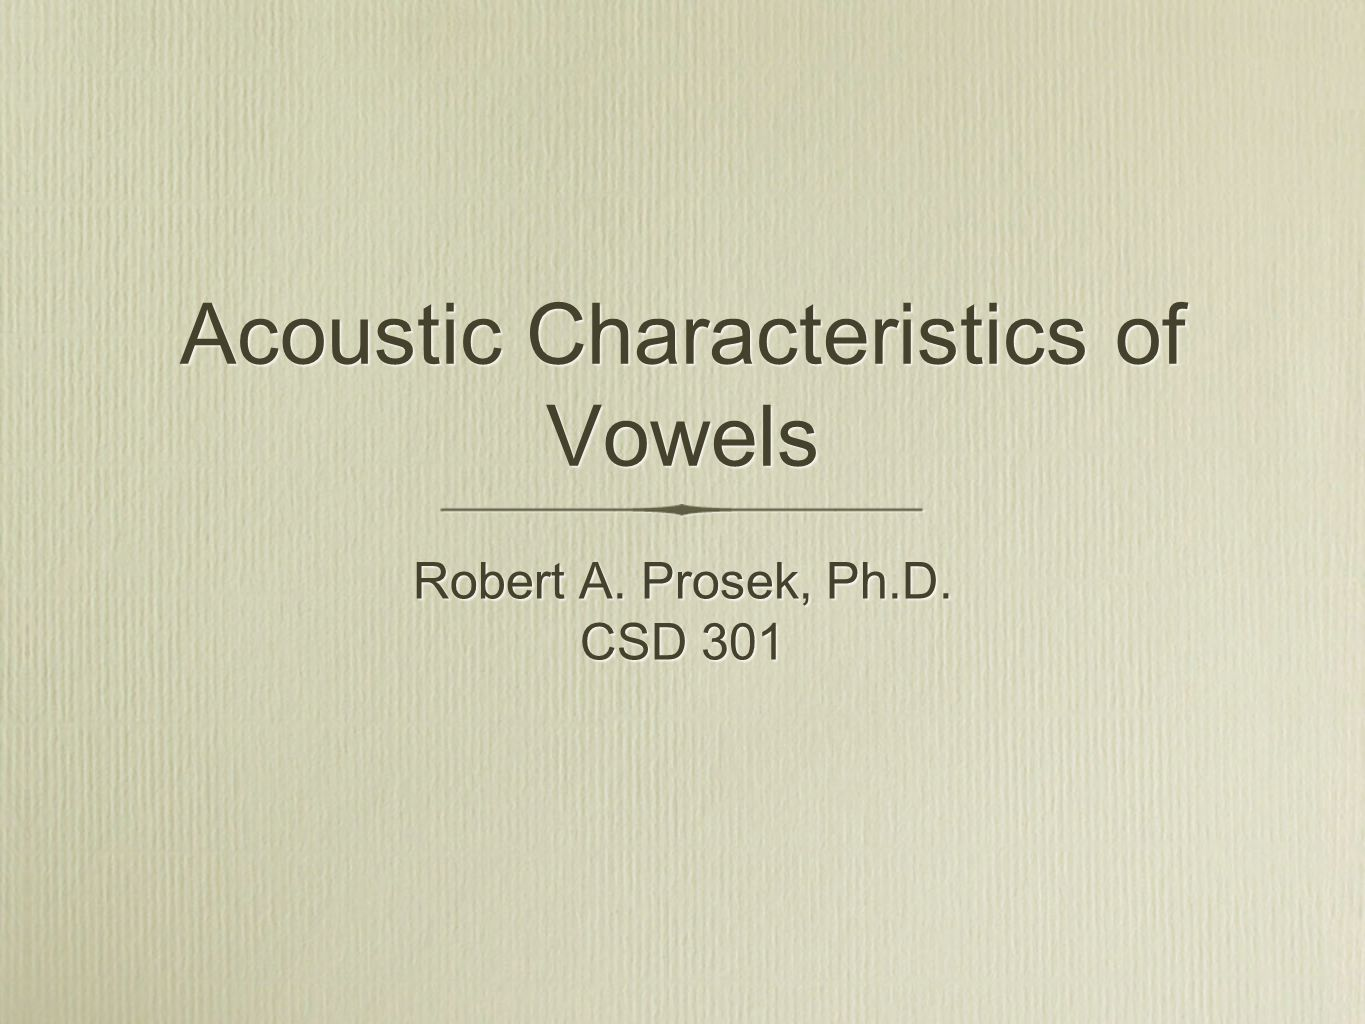 Acoustic Characteristics of Vowels